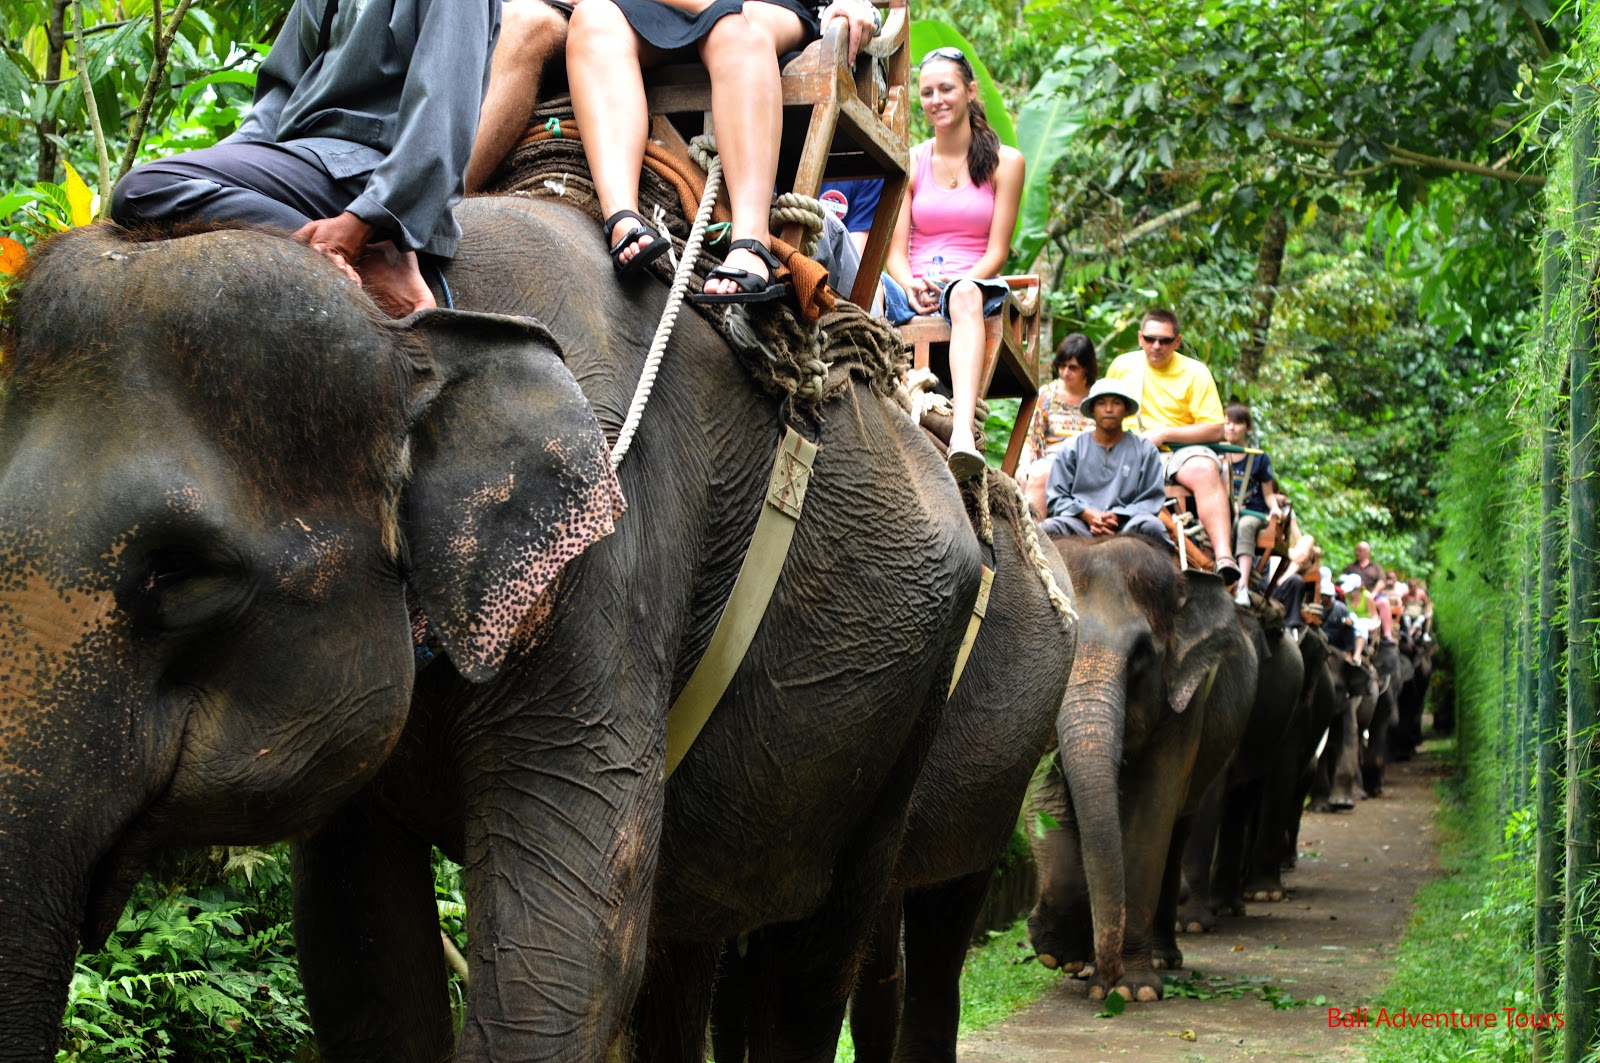 elephant riding Trans-atlantic is at it again, this time in the golden triangle region of chiang rai thailand while guests of the tented camp we were trained by real.